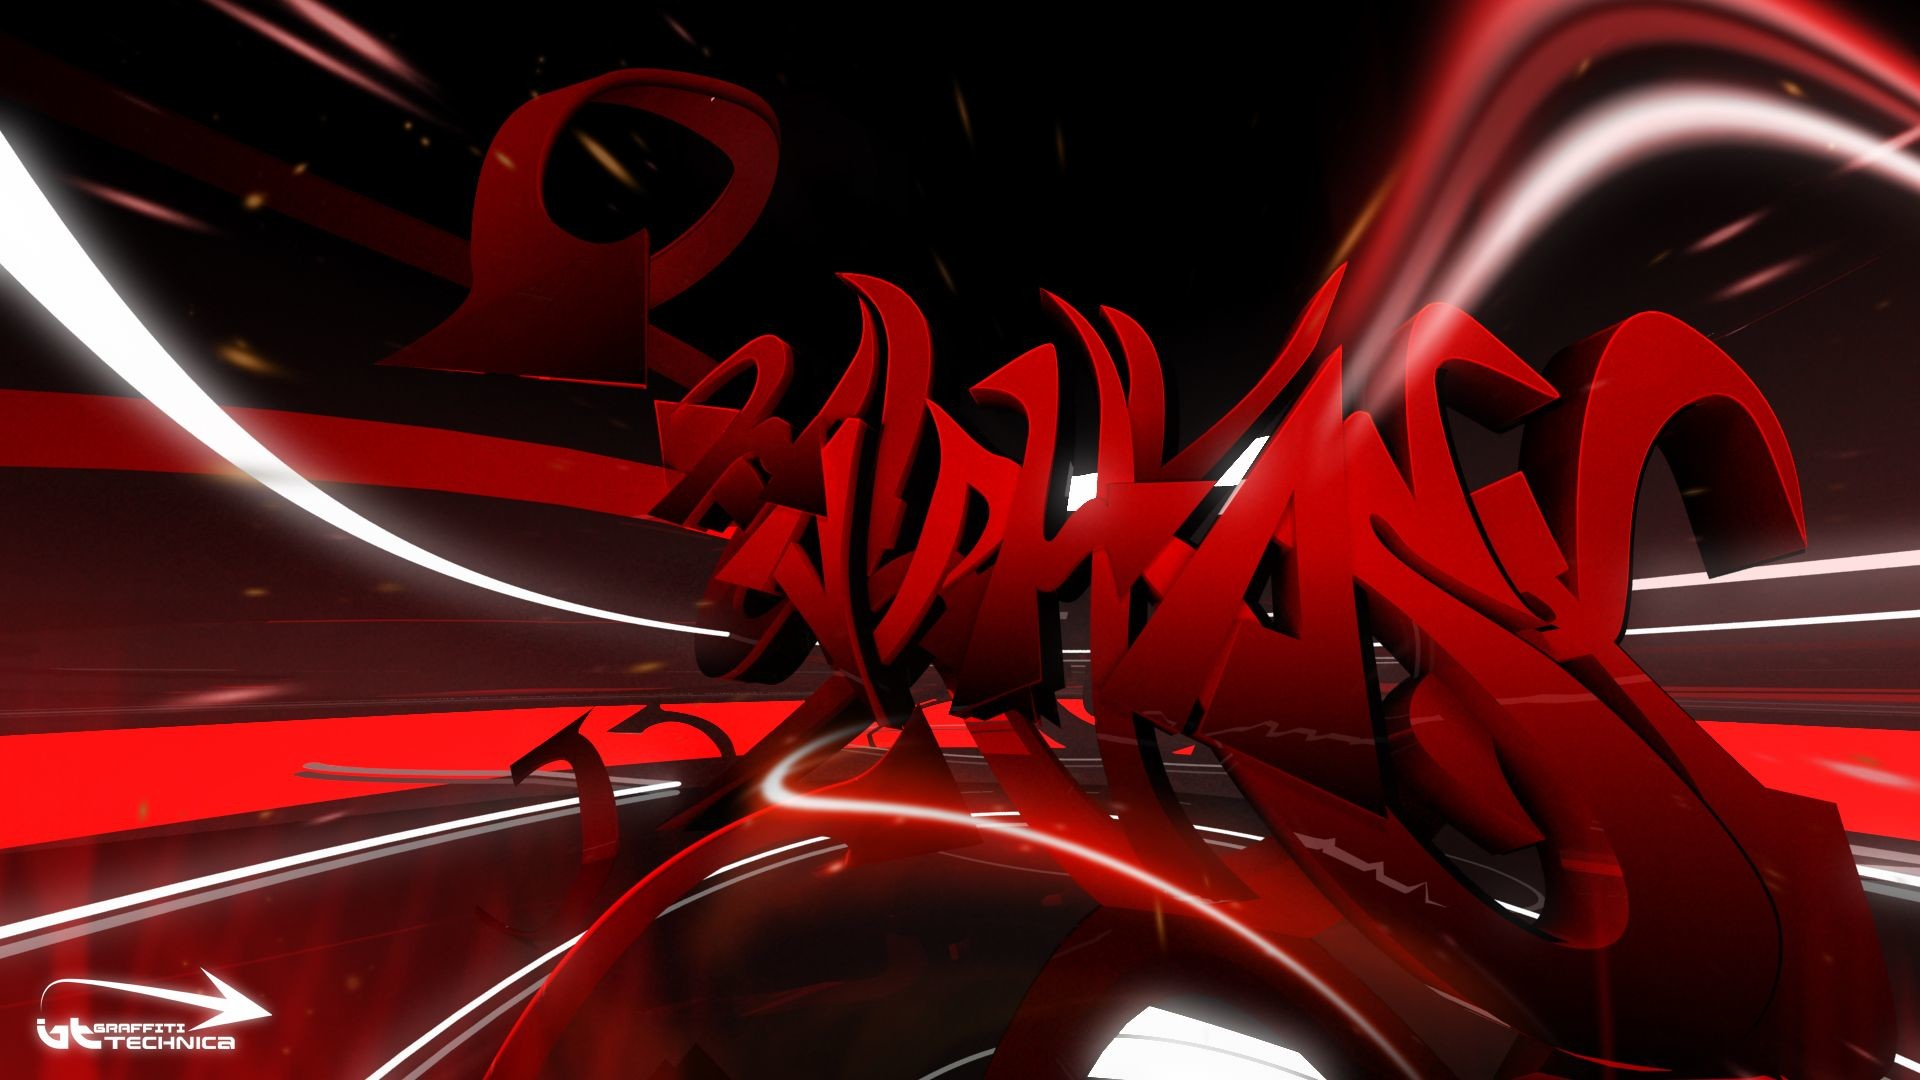 Abstract Art Black and White Red Wallpaper Cool HD